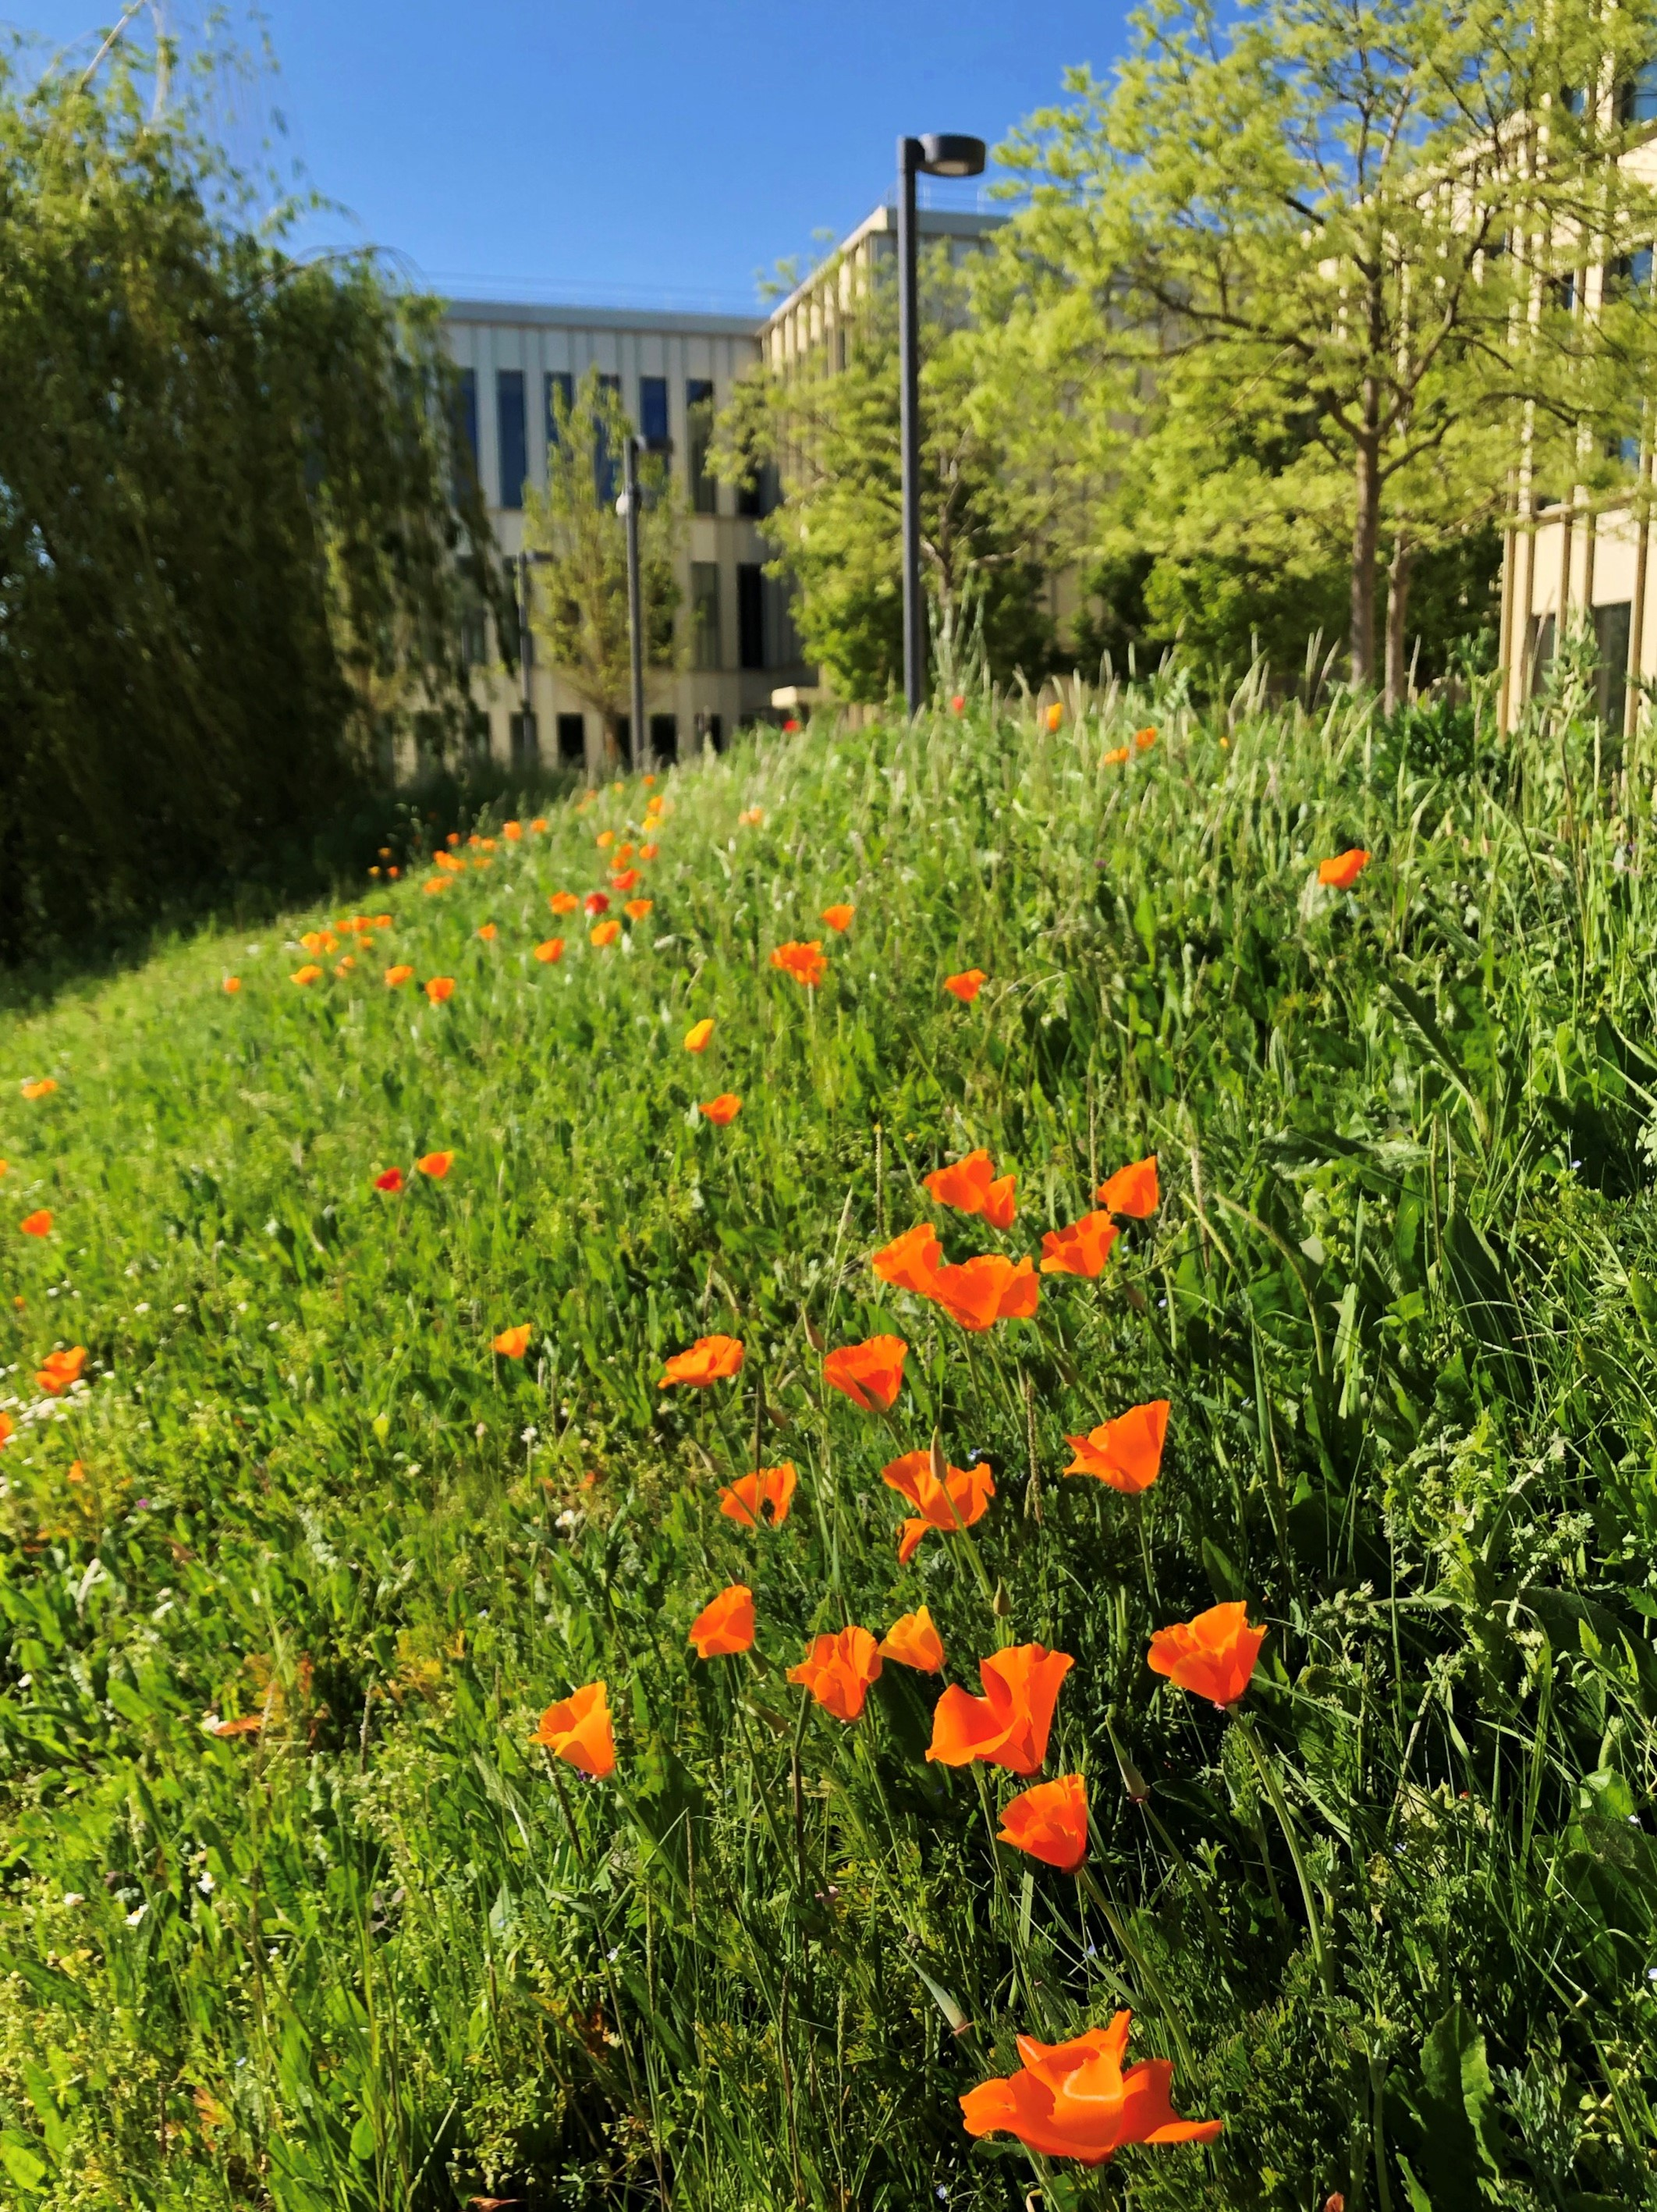 Bright orange daisies in the grass, with the HEC MBA building and trees in the background